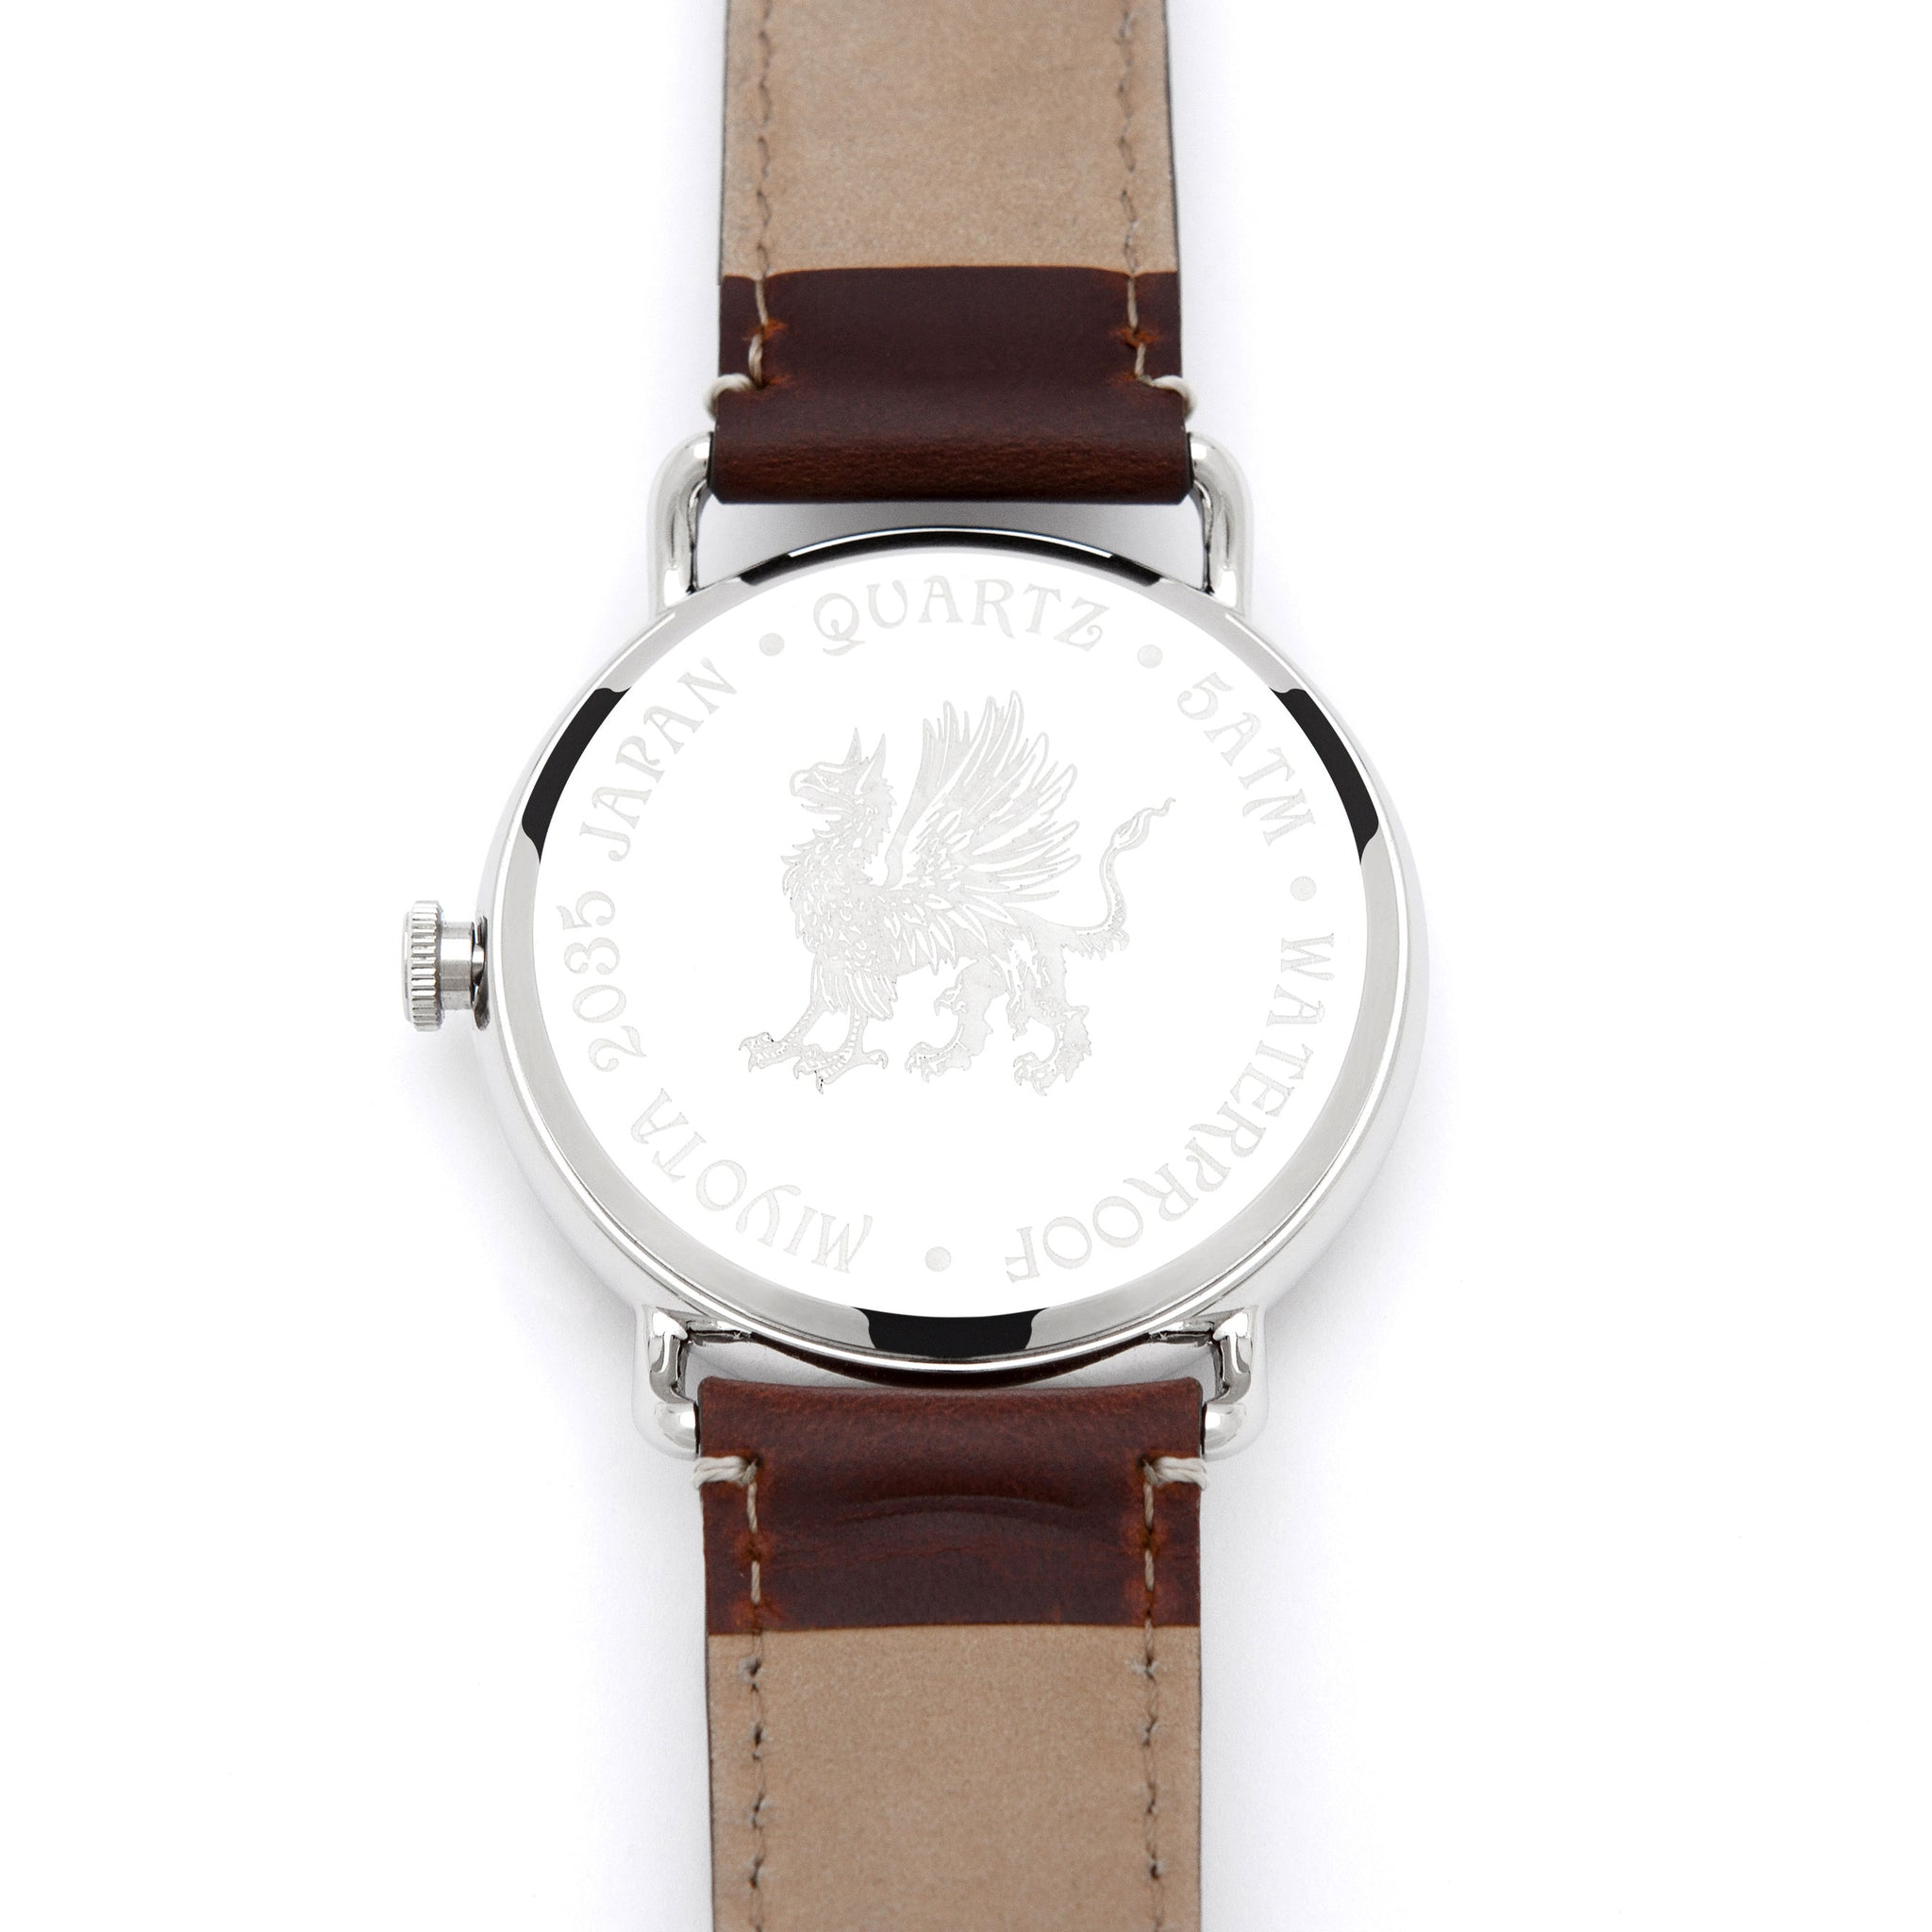 The Griffin Watch